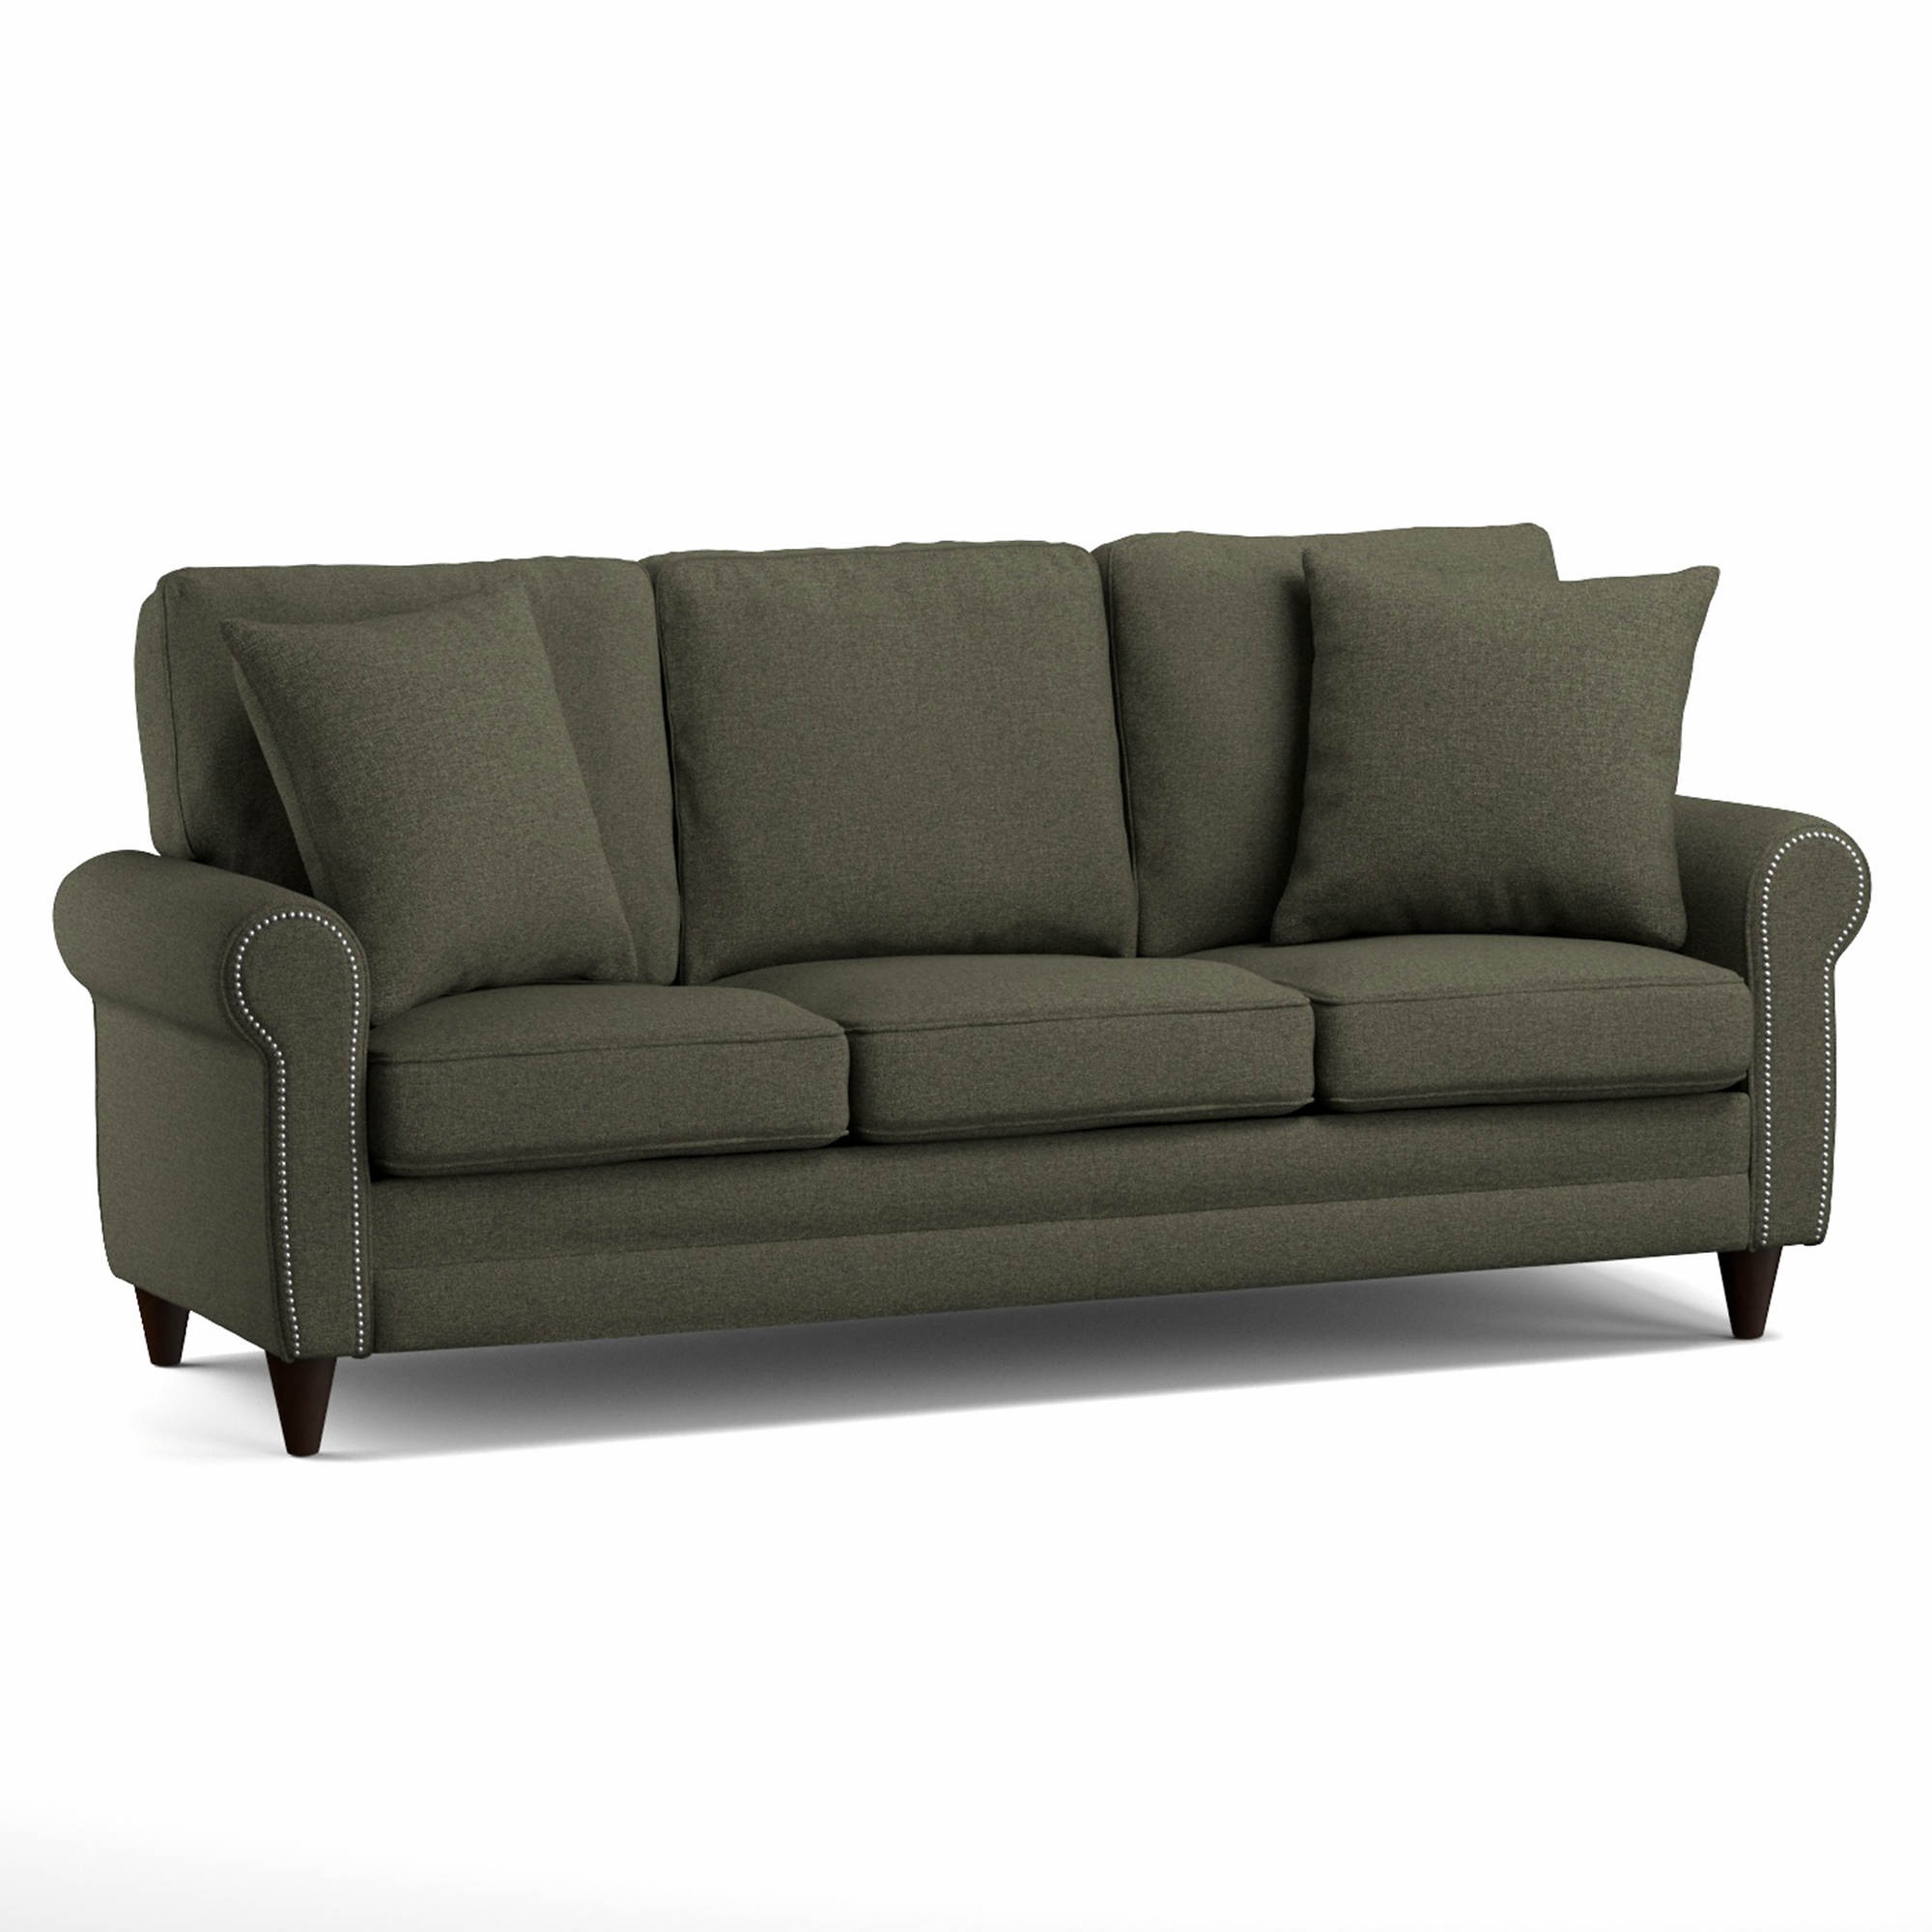 Bellanest leather sofa reviews for Leather sofa reviews